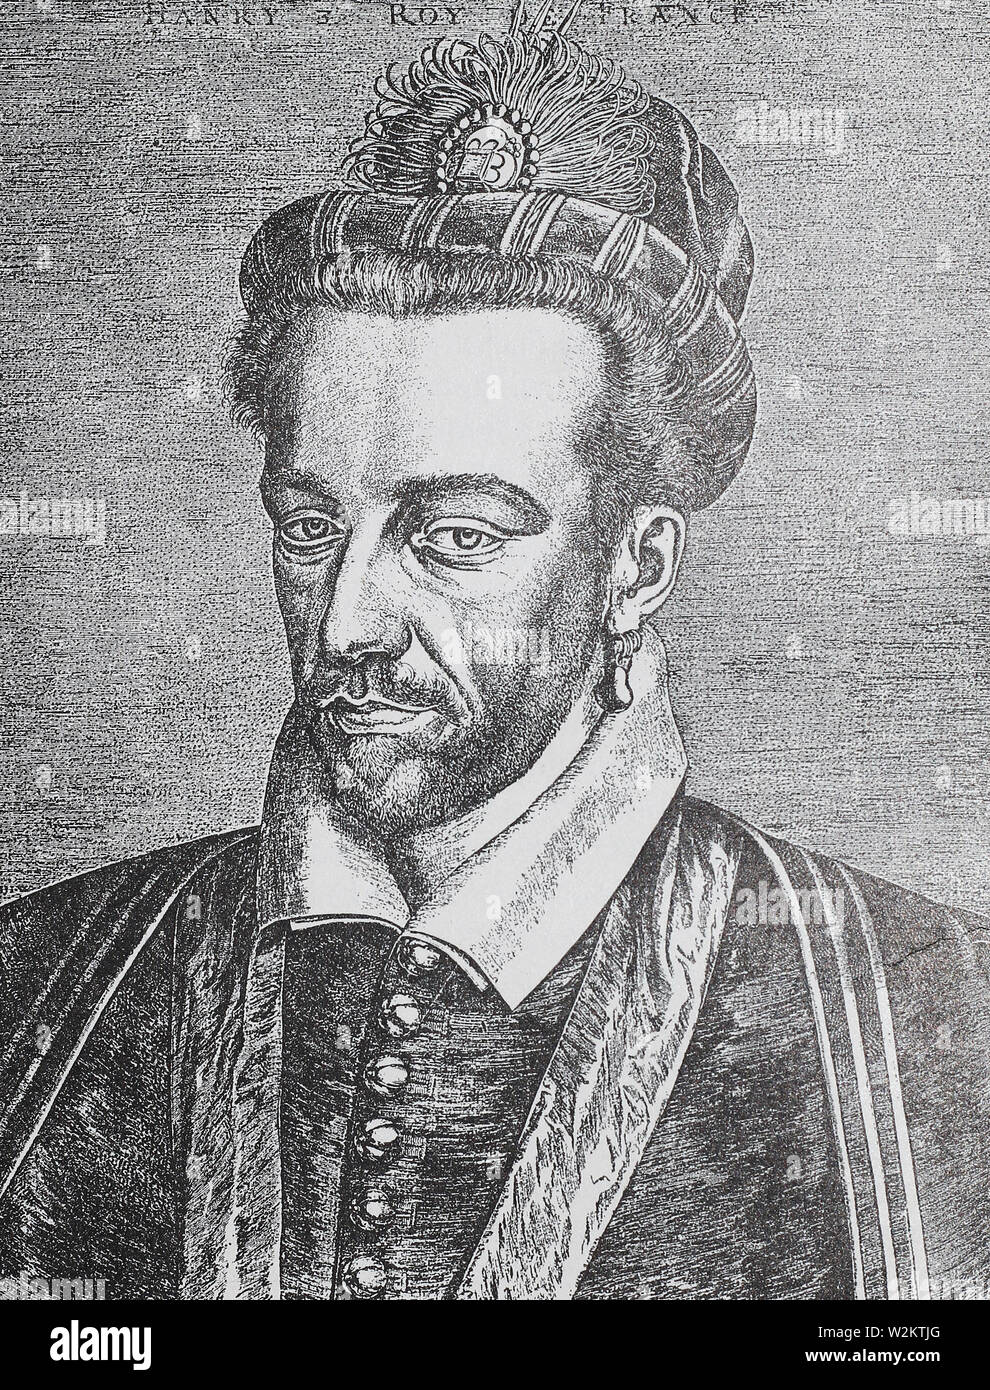 Henry III, King of France. Medieval engraving. - Stock Image